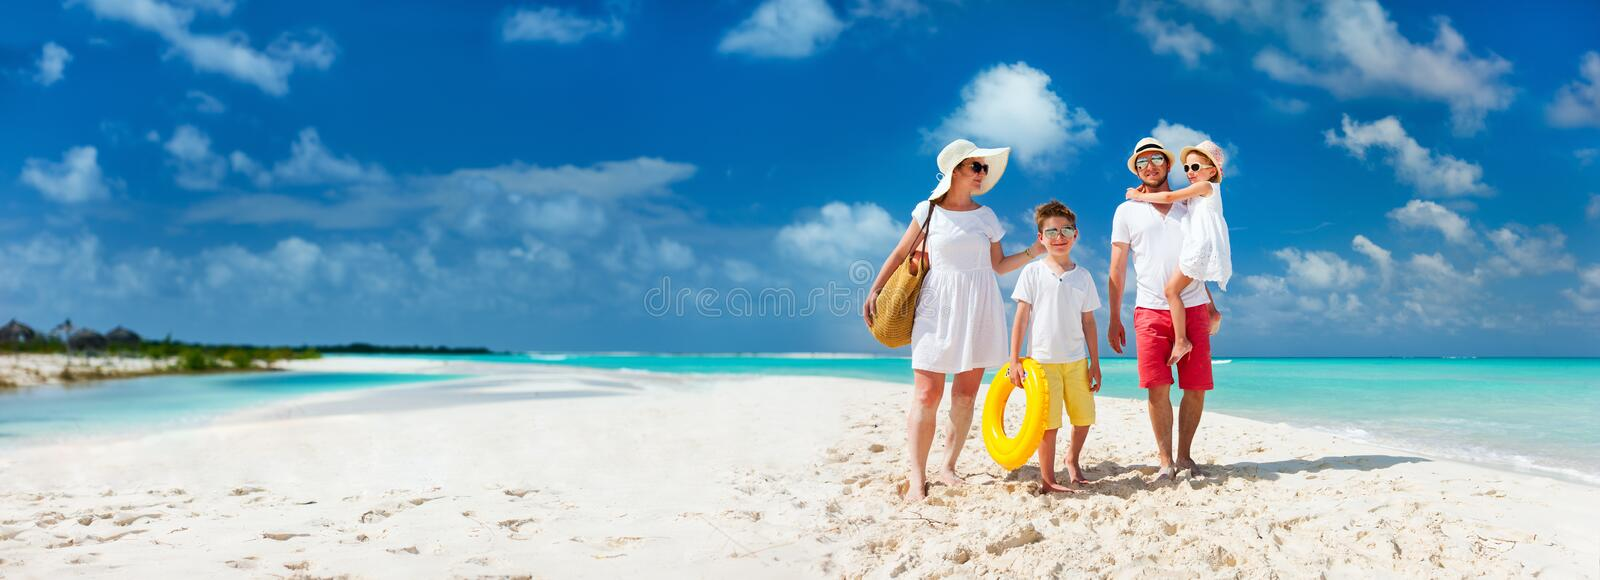 Family on a tropical beach vacation. Panorama of happy beautiful family with kids walking together on tropical beach during summer vacation